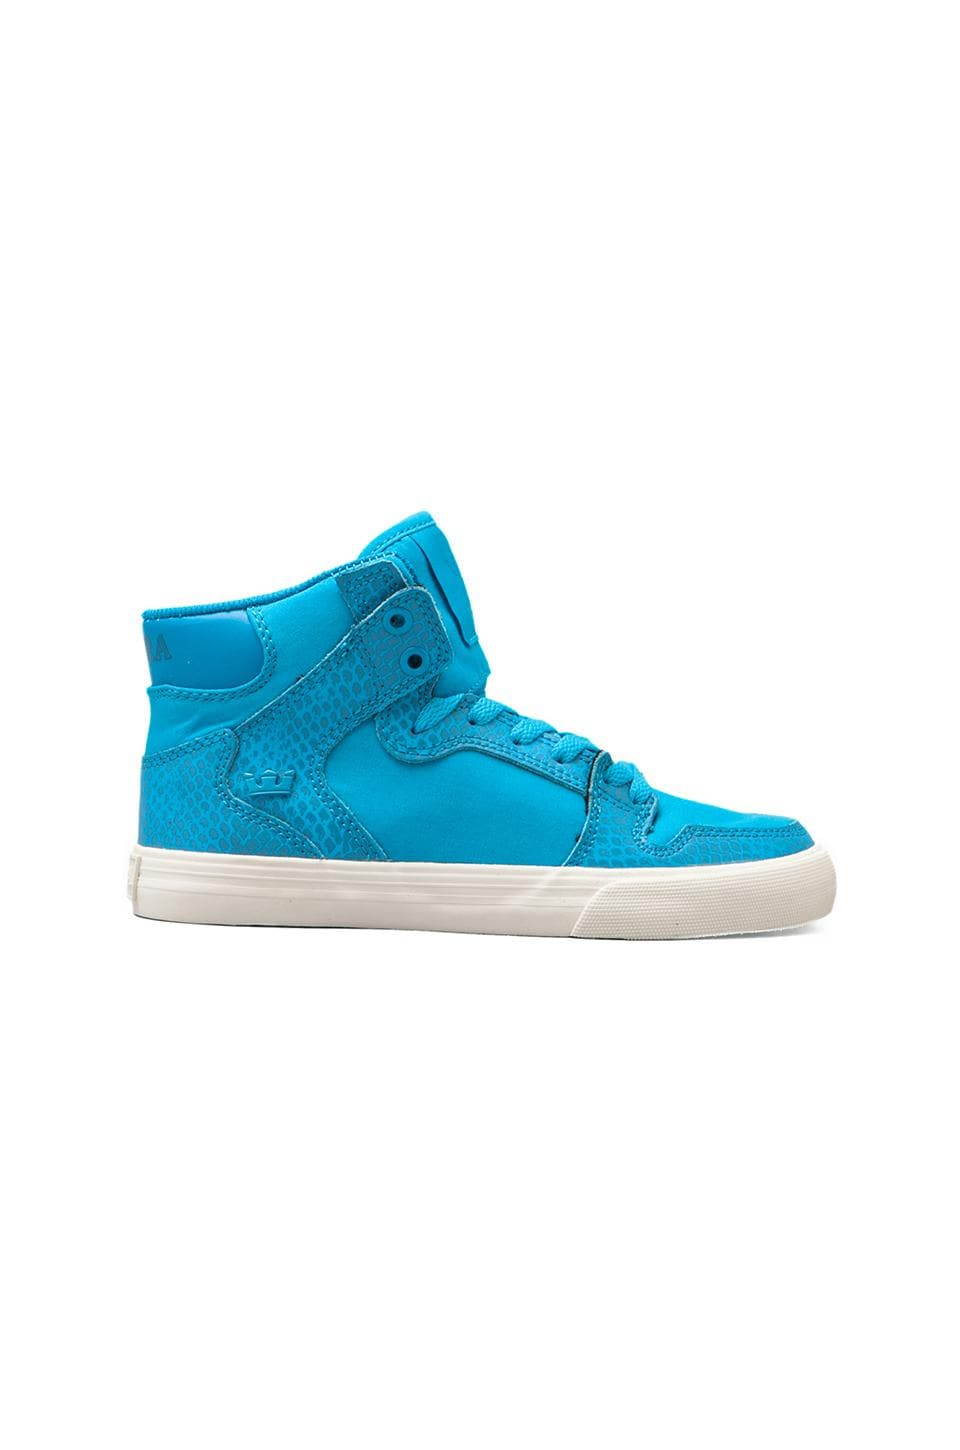 Supra Vaider Sneaker in Turquoise